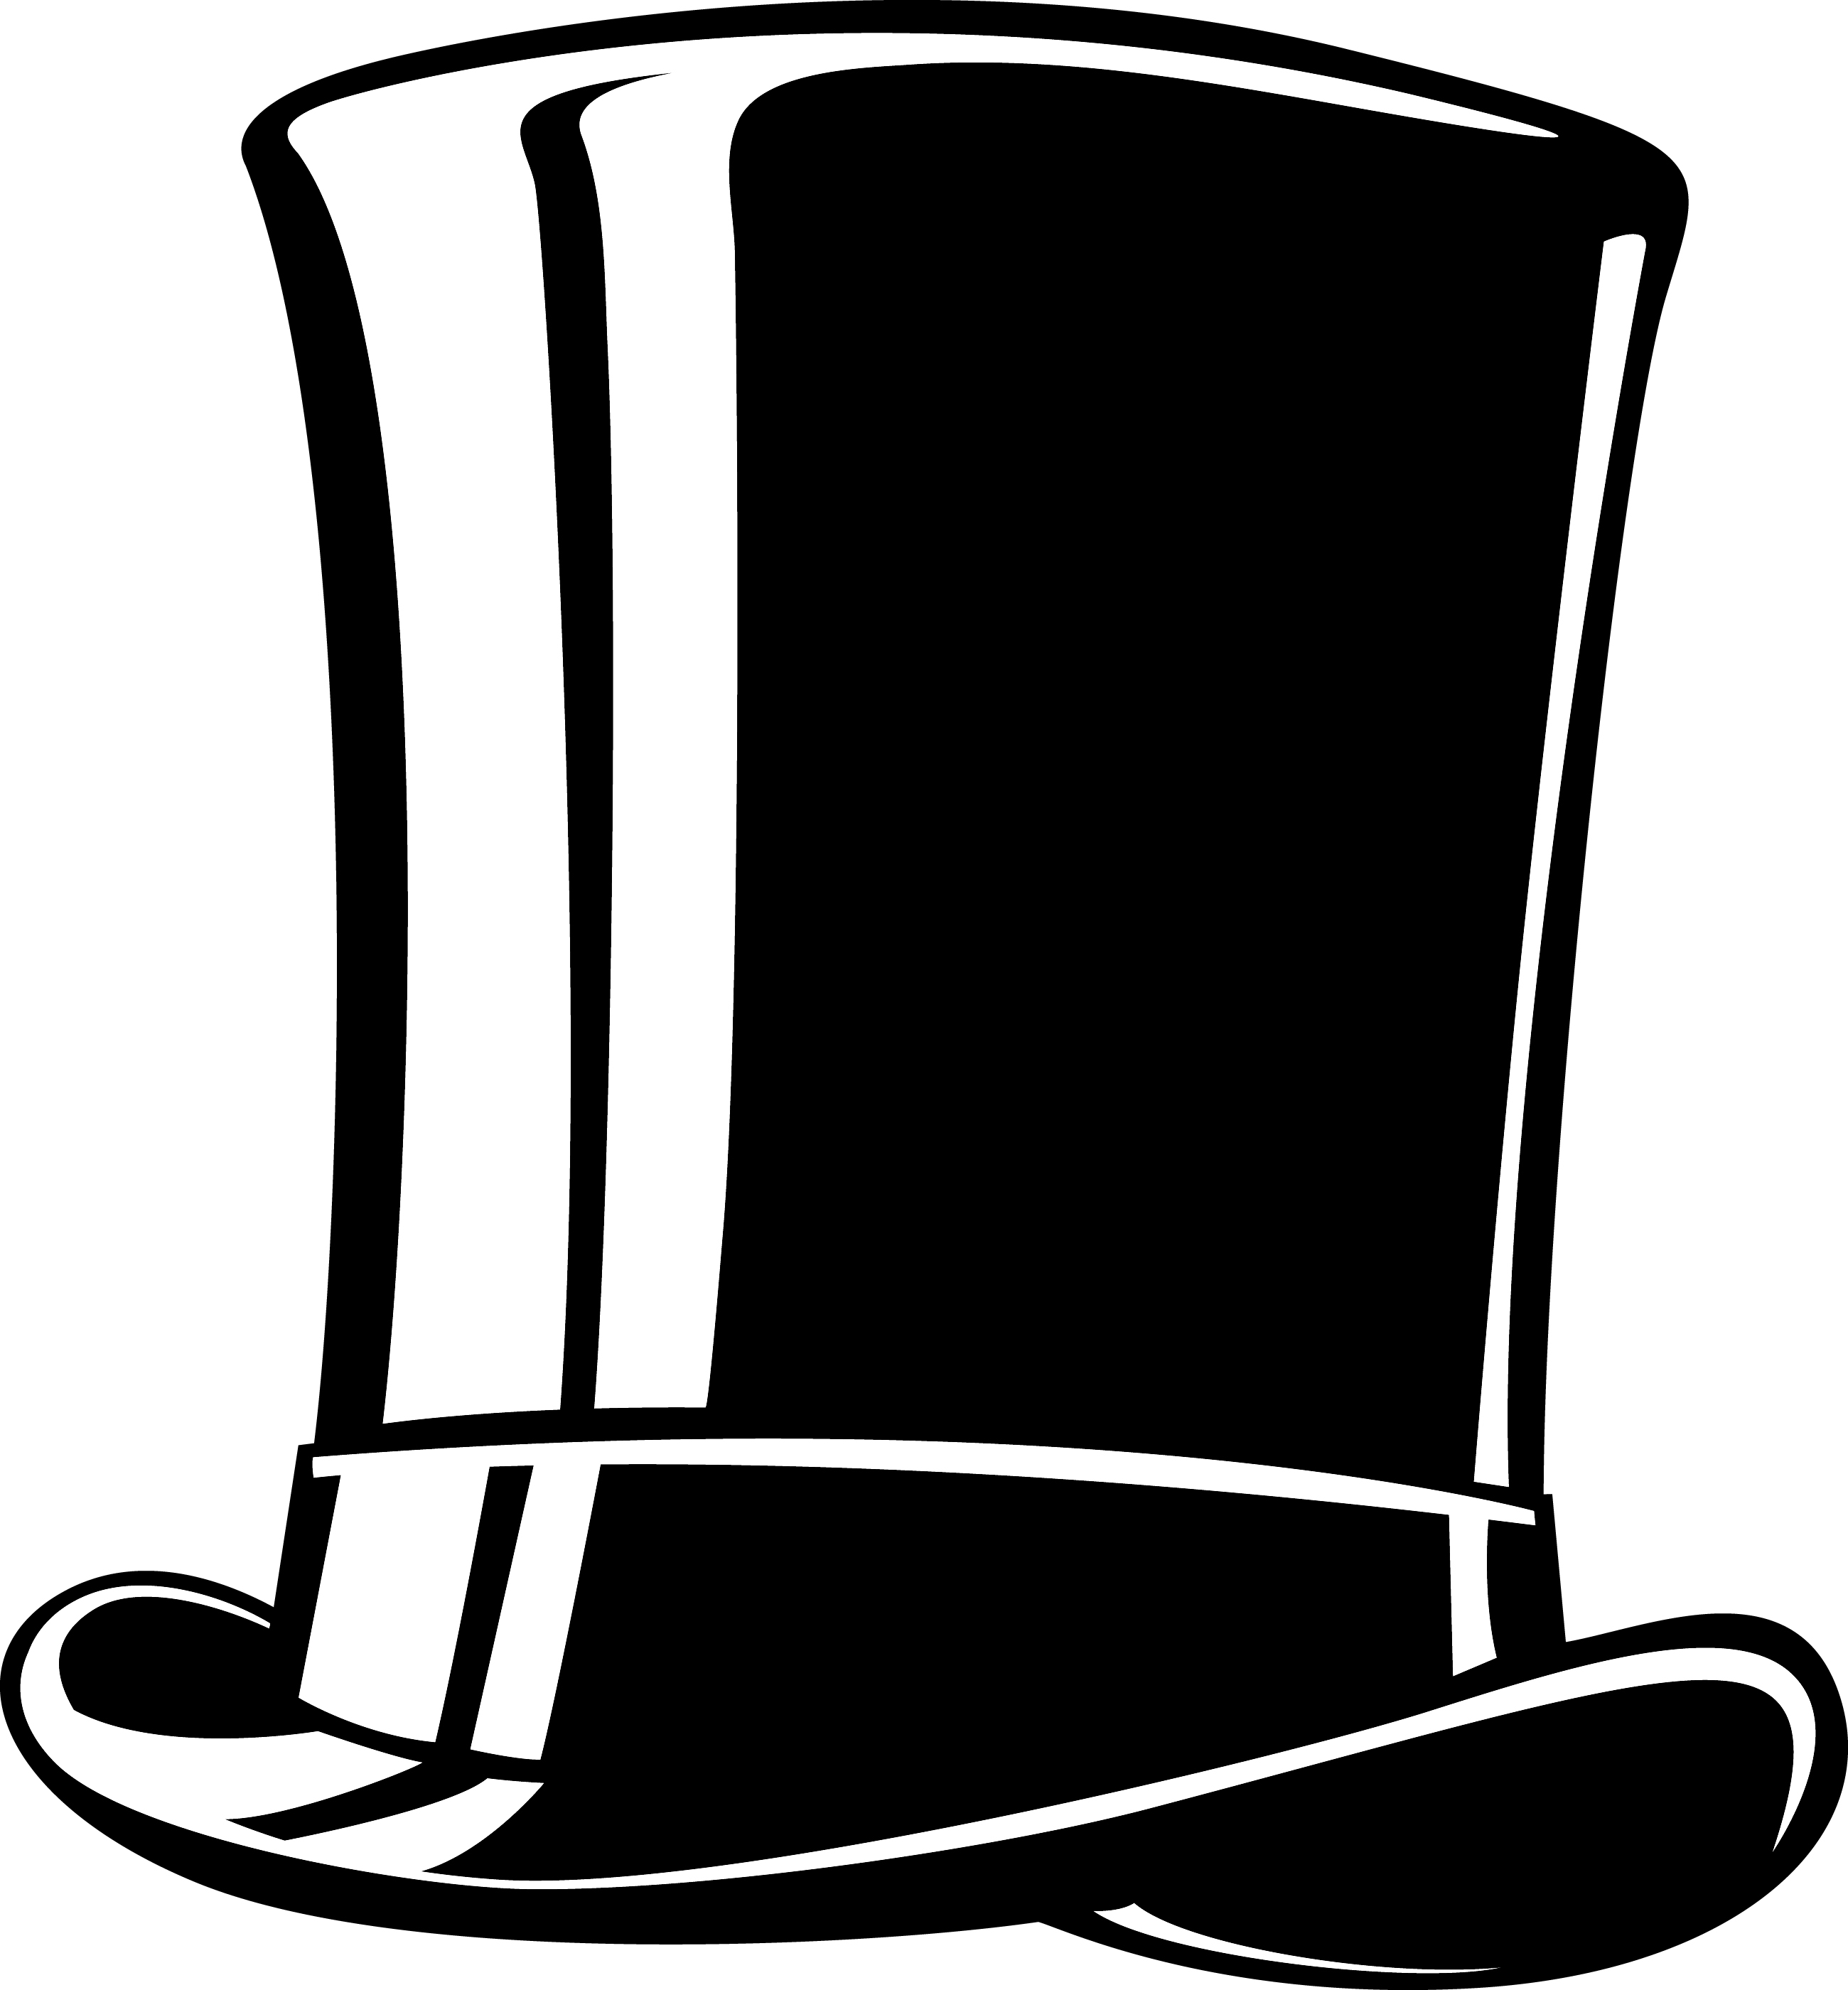 Drawn top hat clip art Free pictures Top Clip on